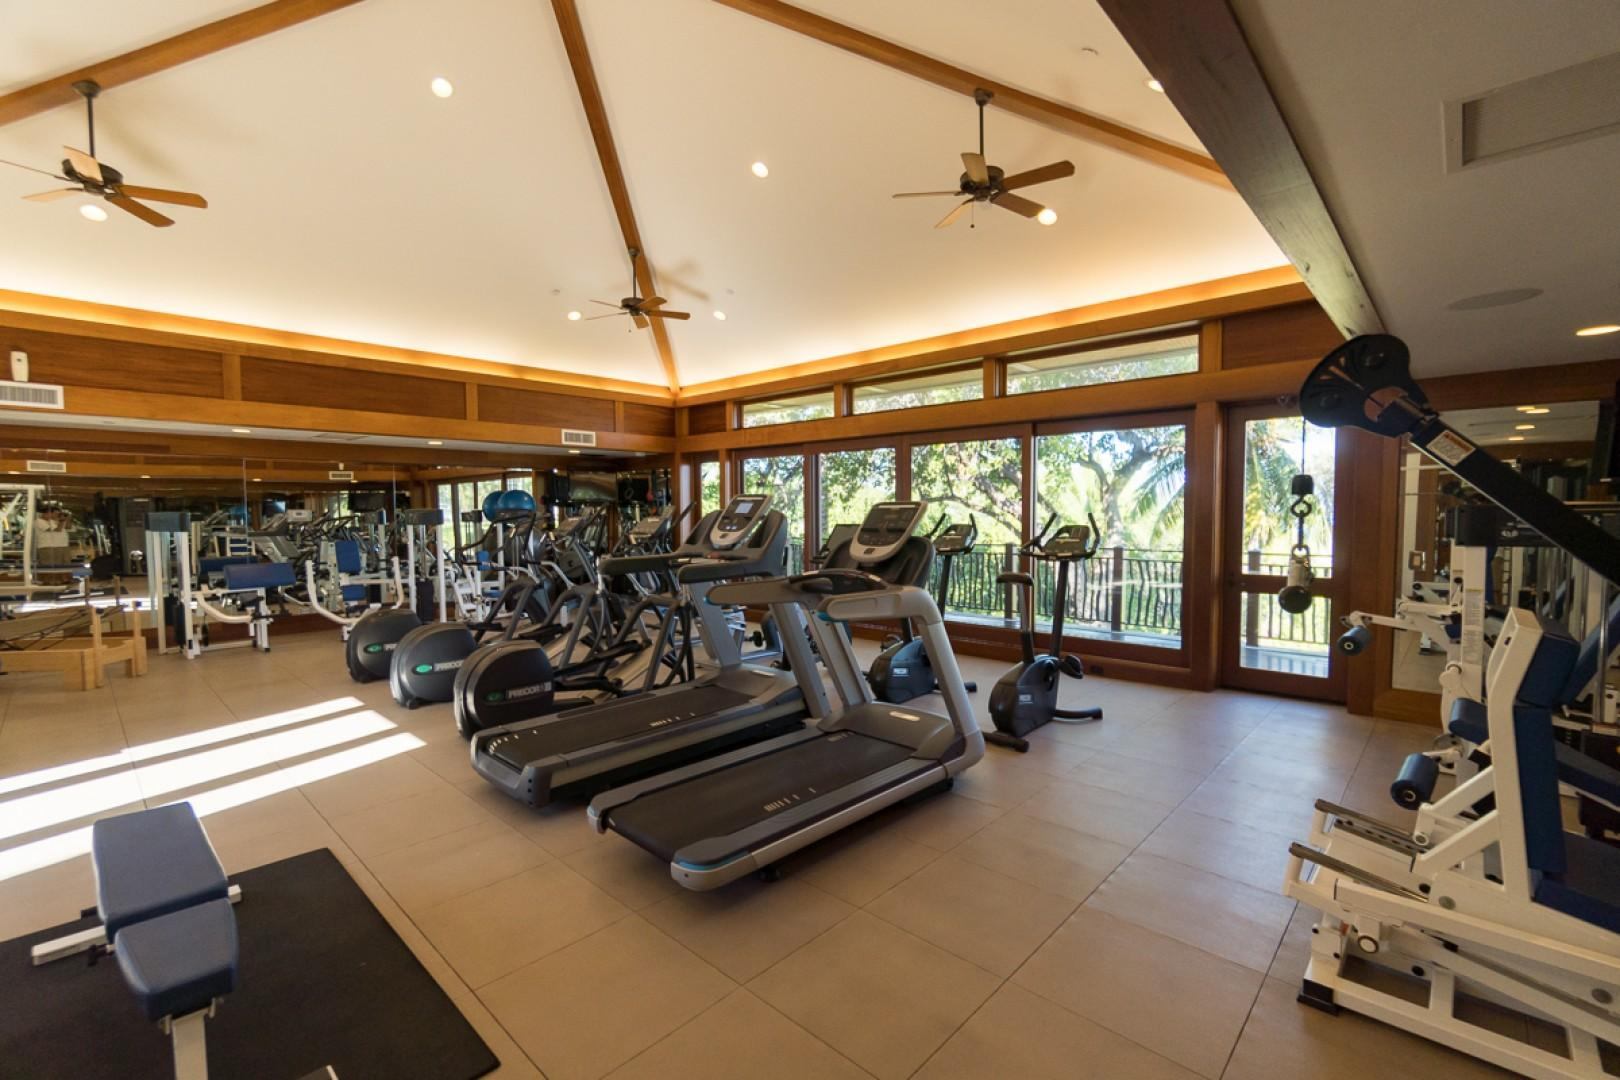 A bright and airy setting for your workout